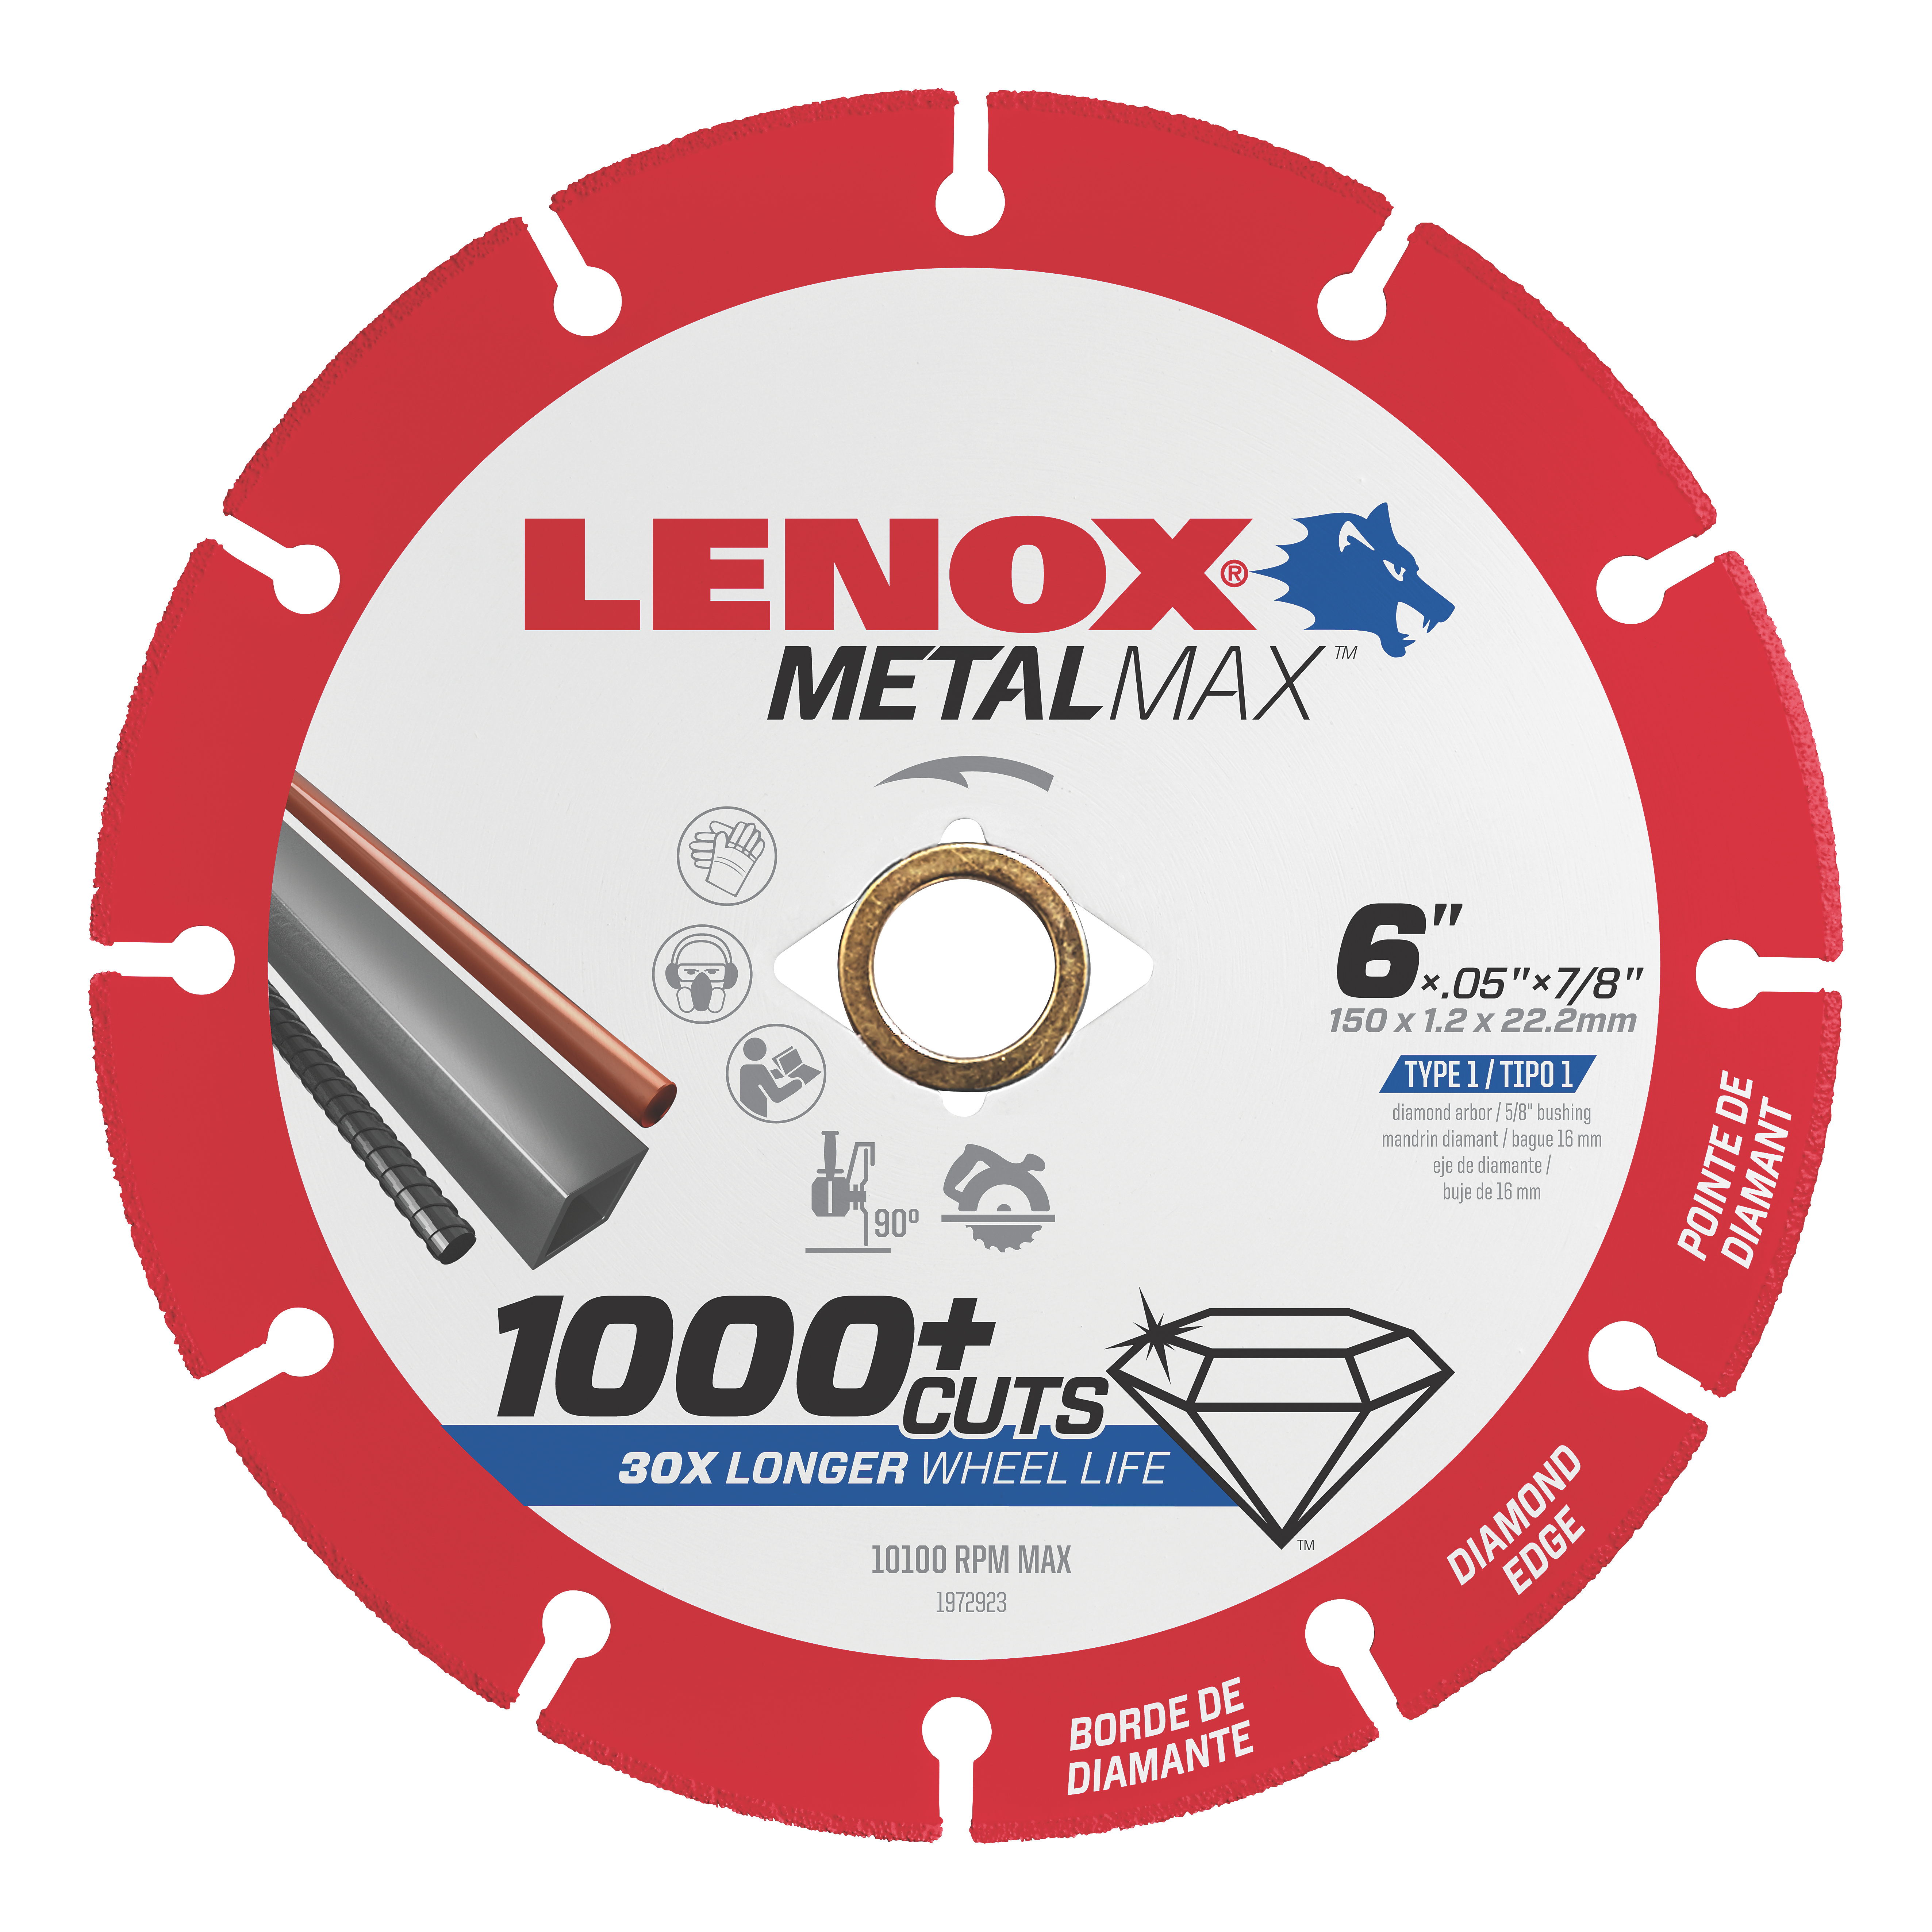 LENOX® TOOLS METALMAX™ 1972923 METALMAX™ Type 1 Cut-Off Wheel, 6 in Dia x 0.05 in THK, 7/8 in Center Hole, 40/50 Grit, Diamond Abrasive